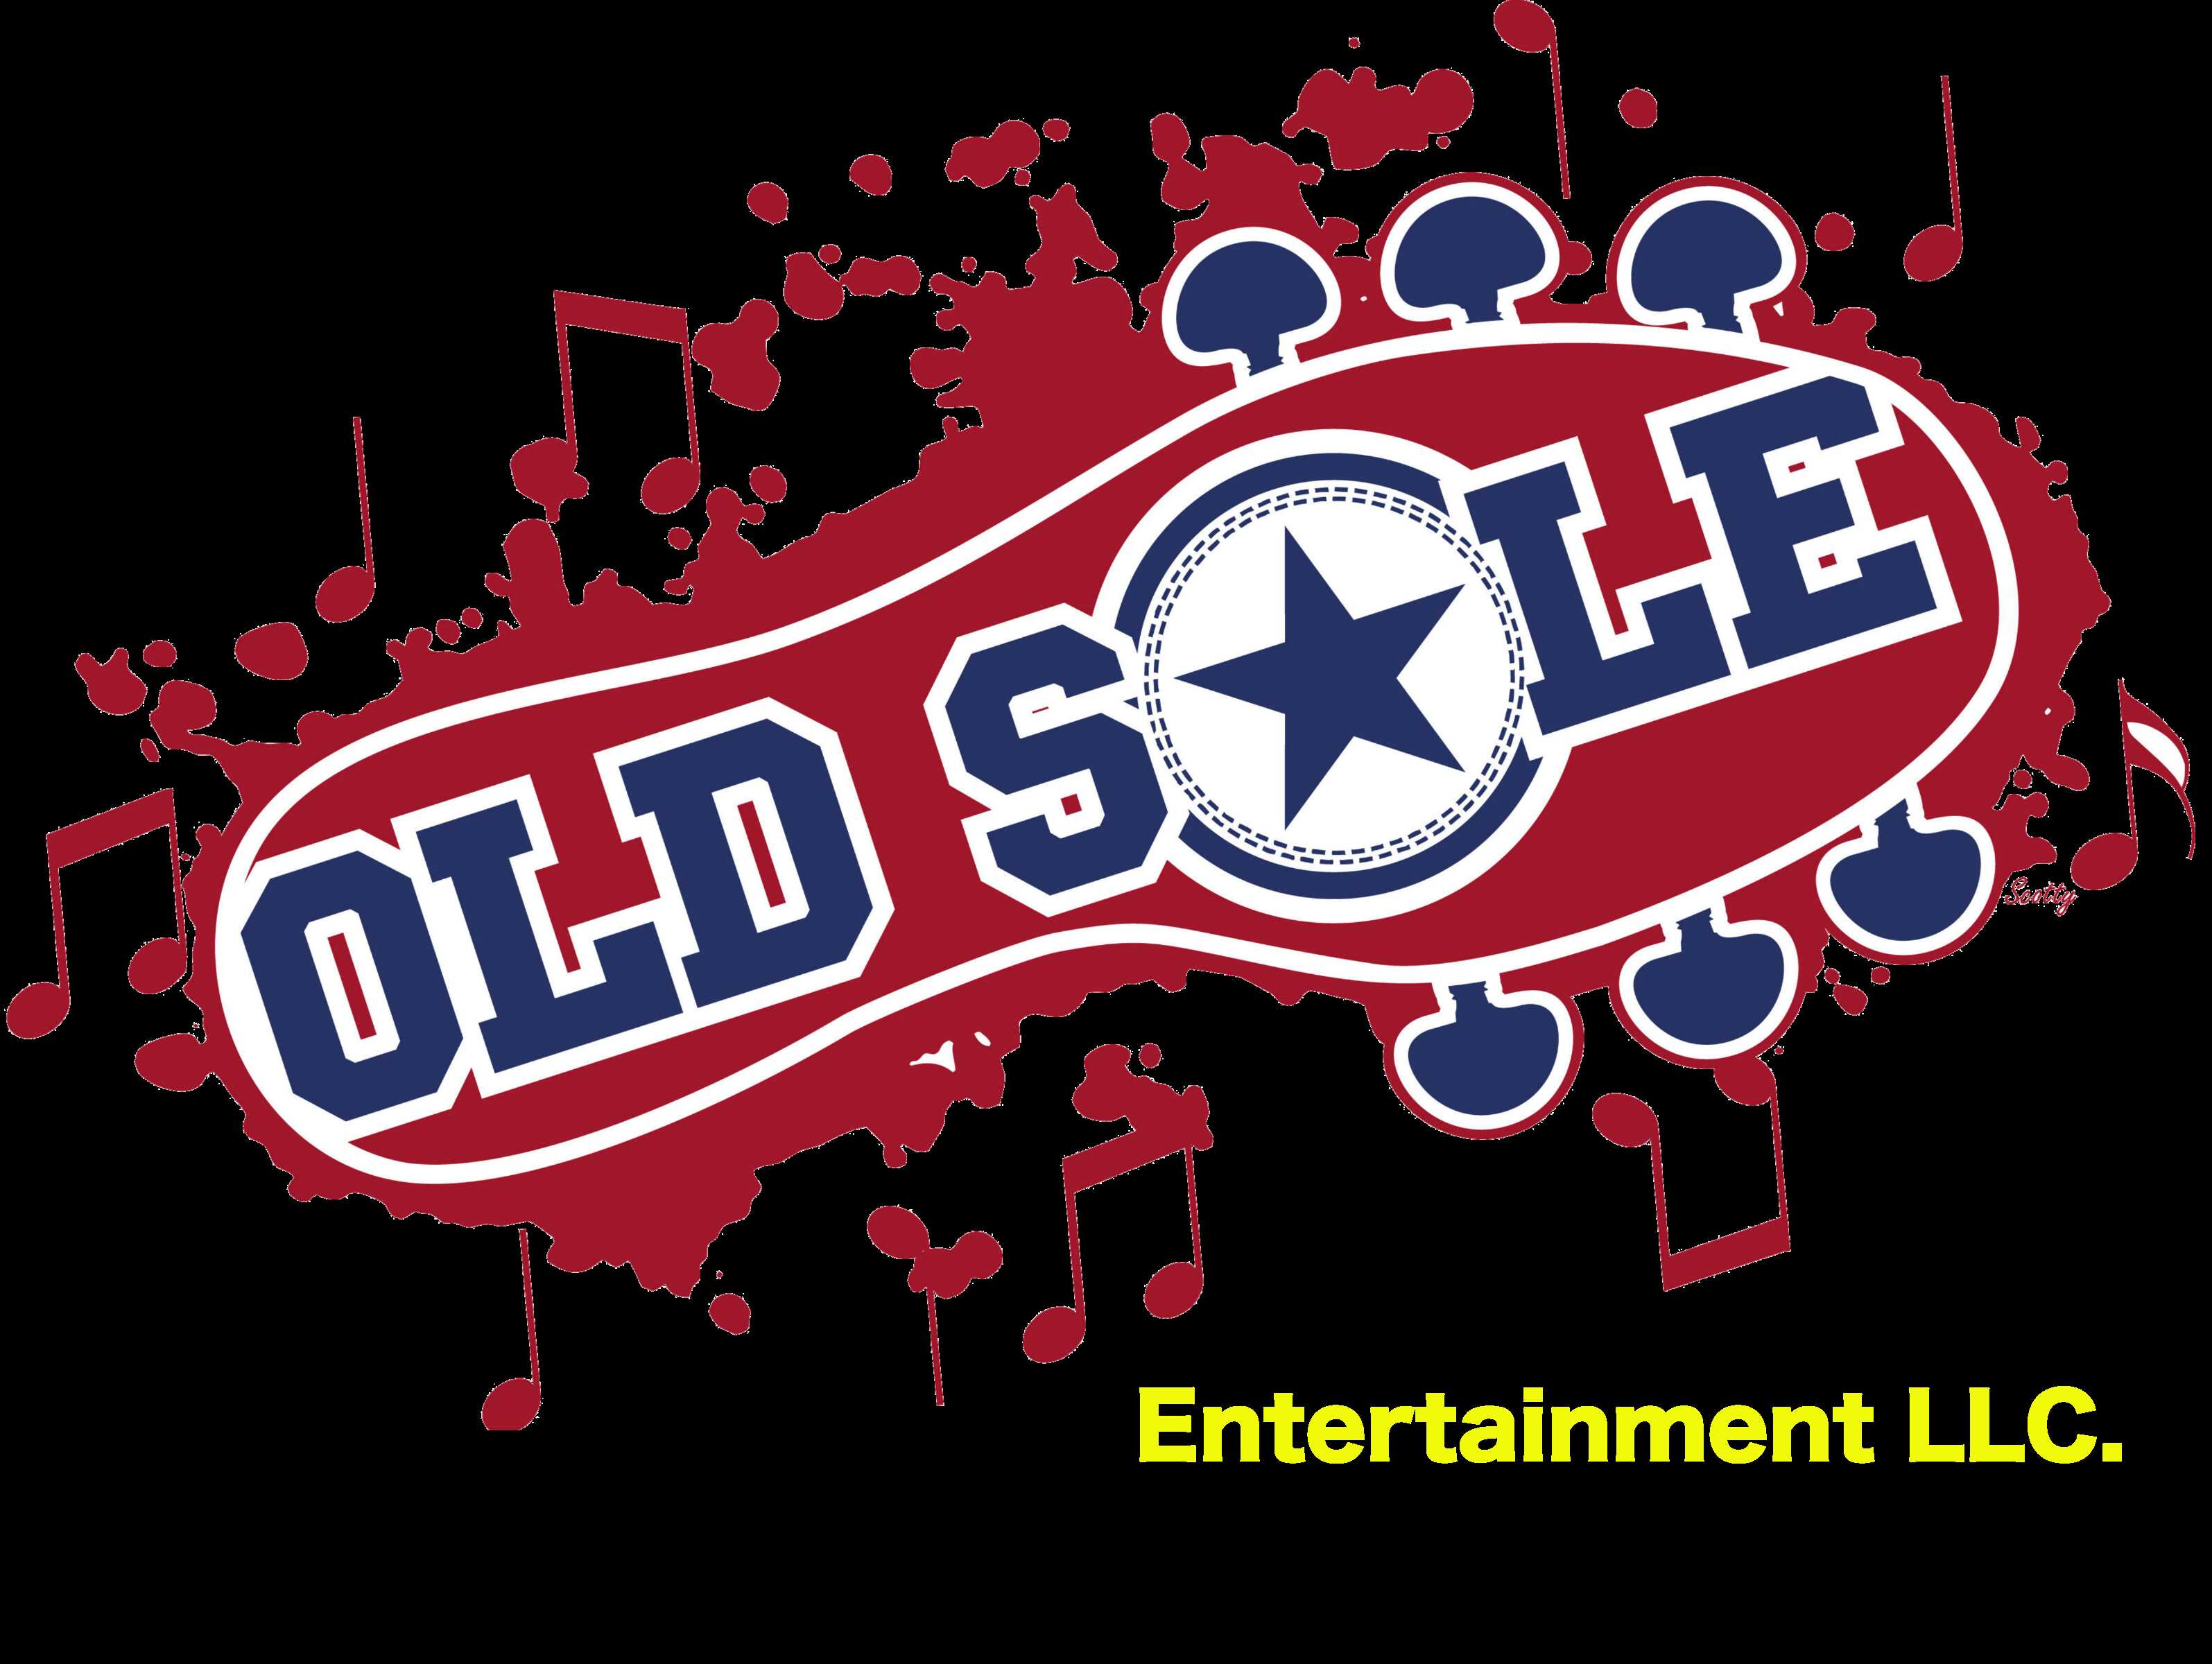 Old Sole Entertainment LLC, profile image